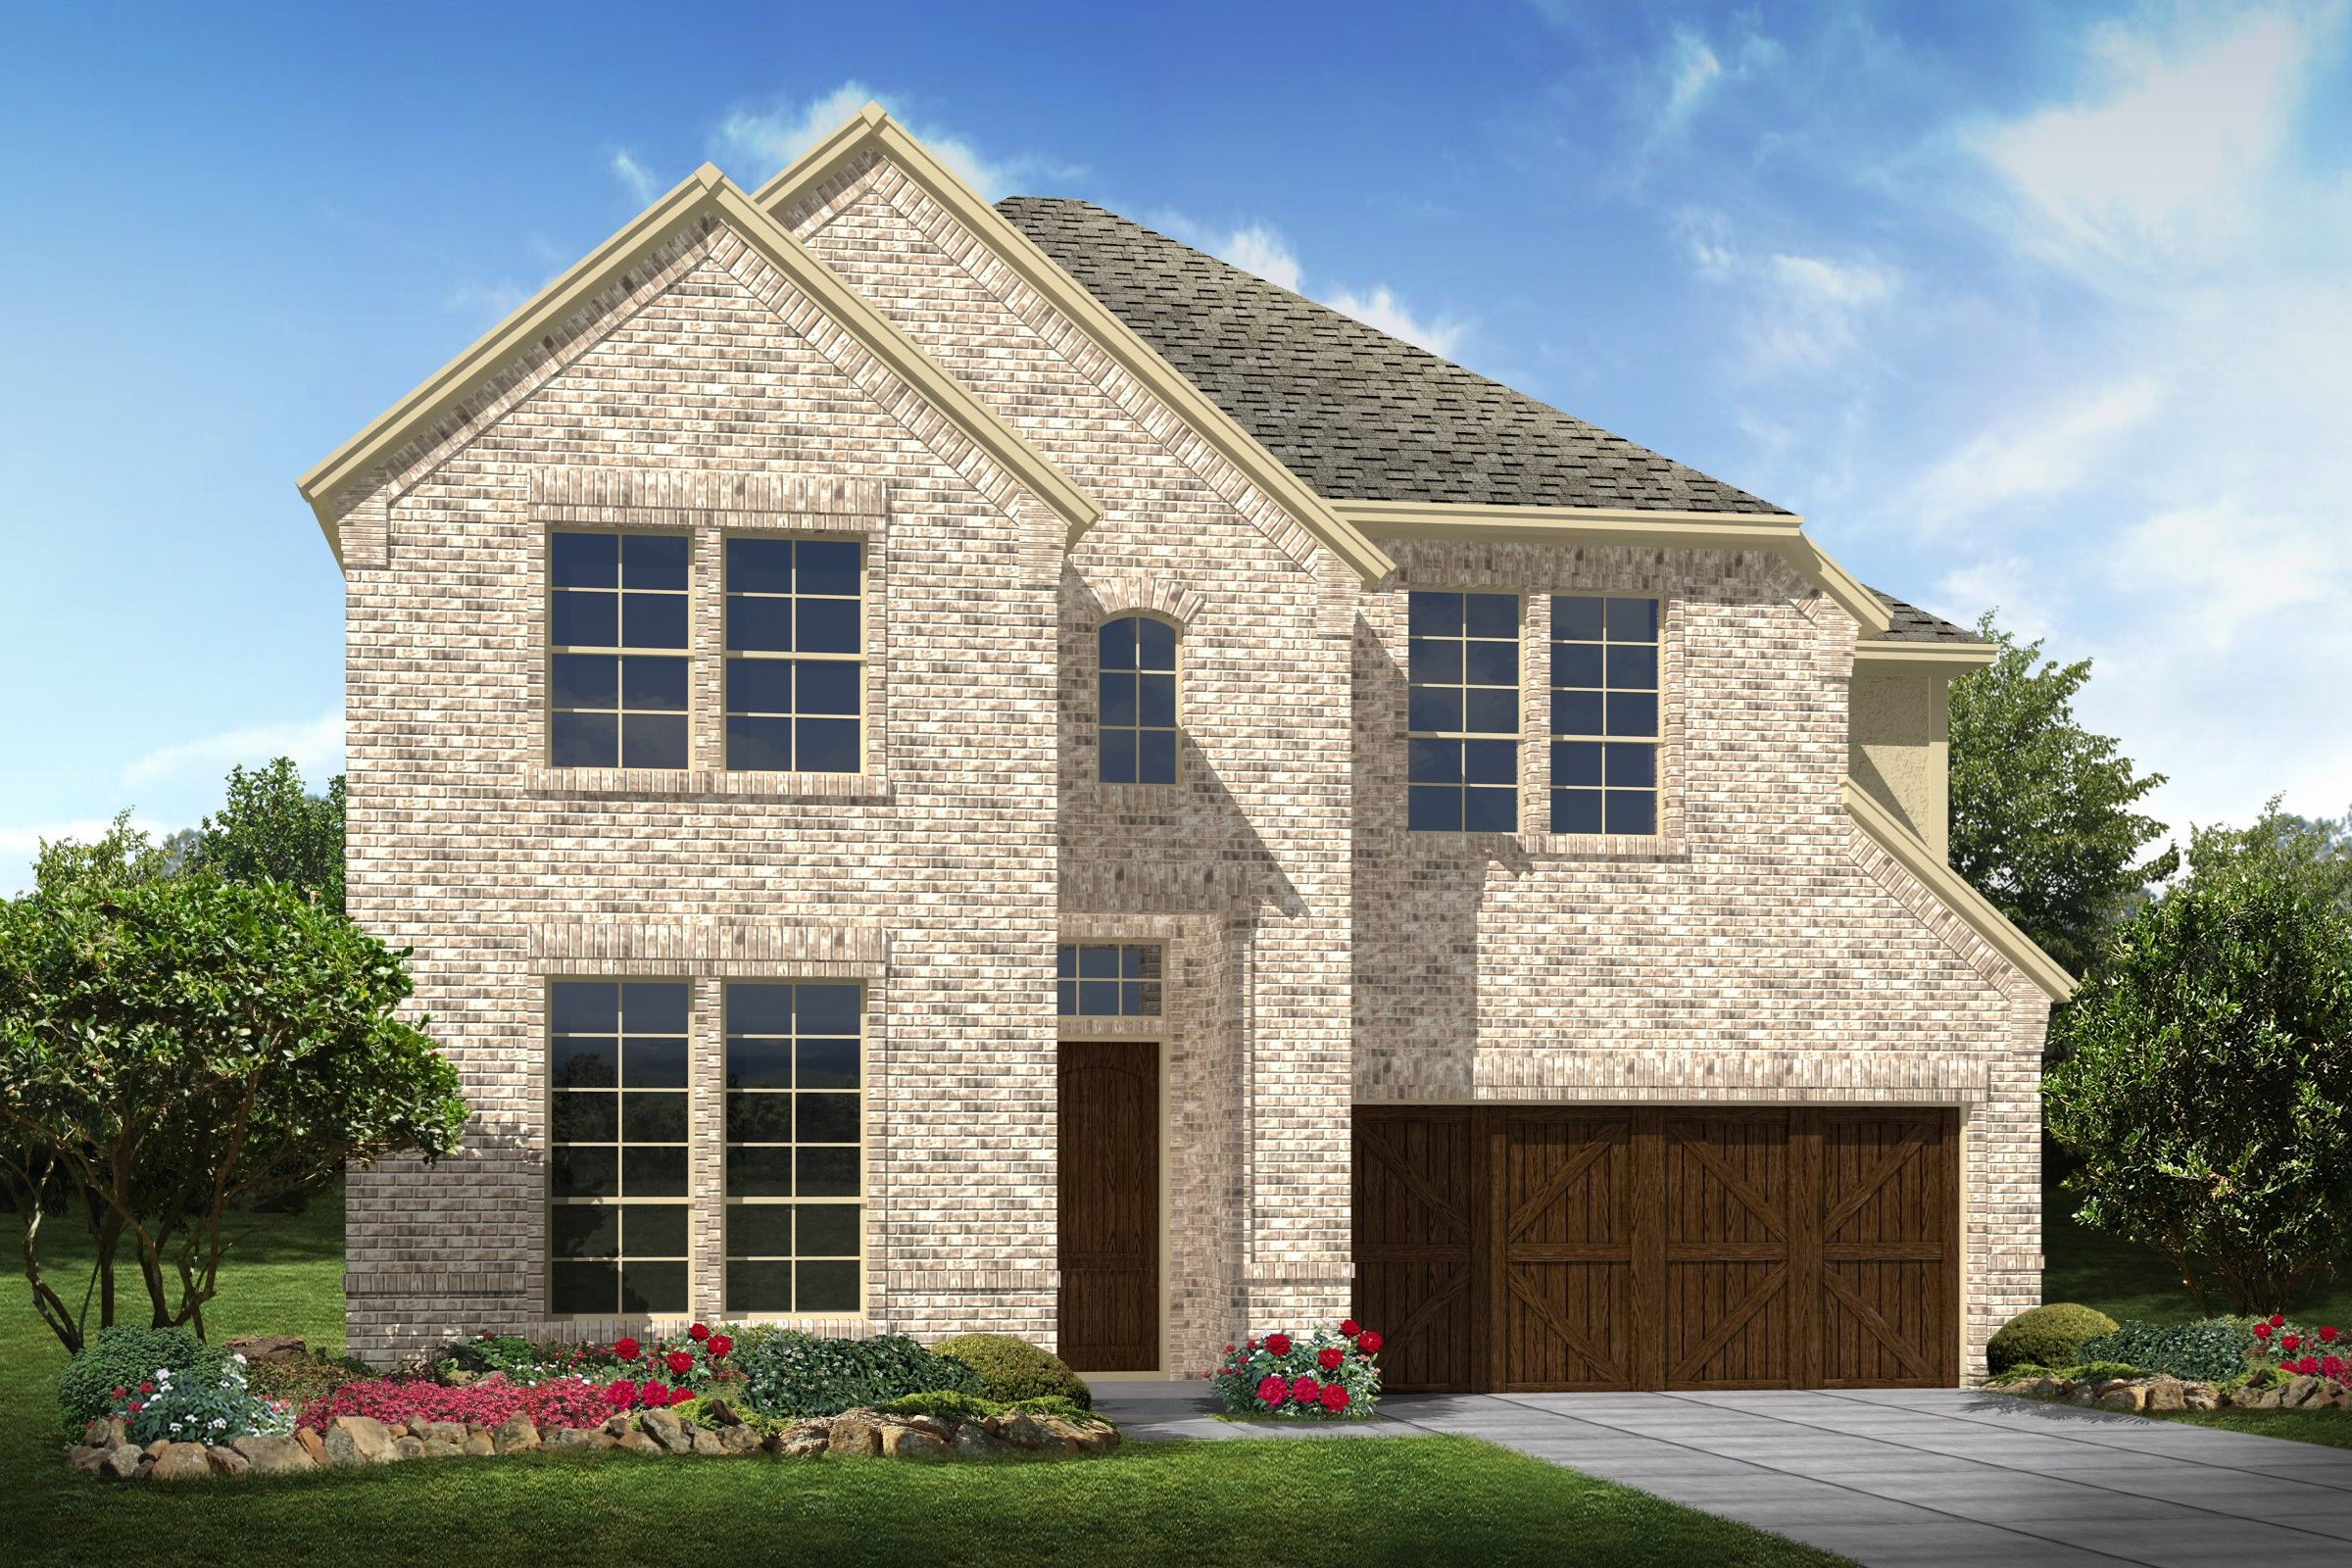 Single Family for Sale at Glade Parks - Summerwood Iii 2608 San Jacinto Drive Euless, Texas 76039 United States